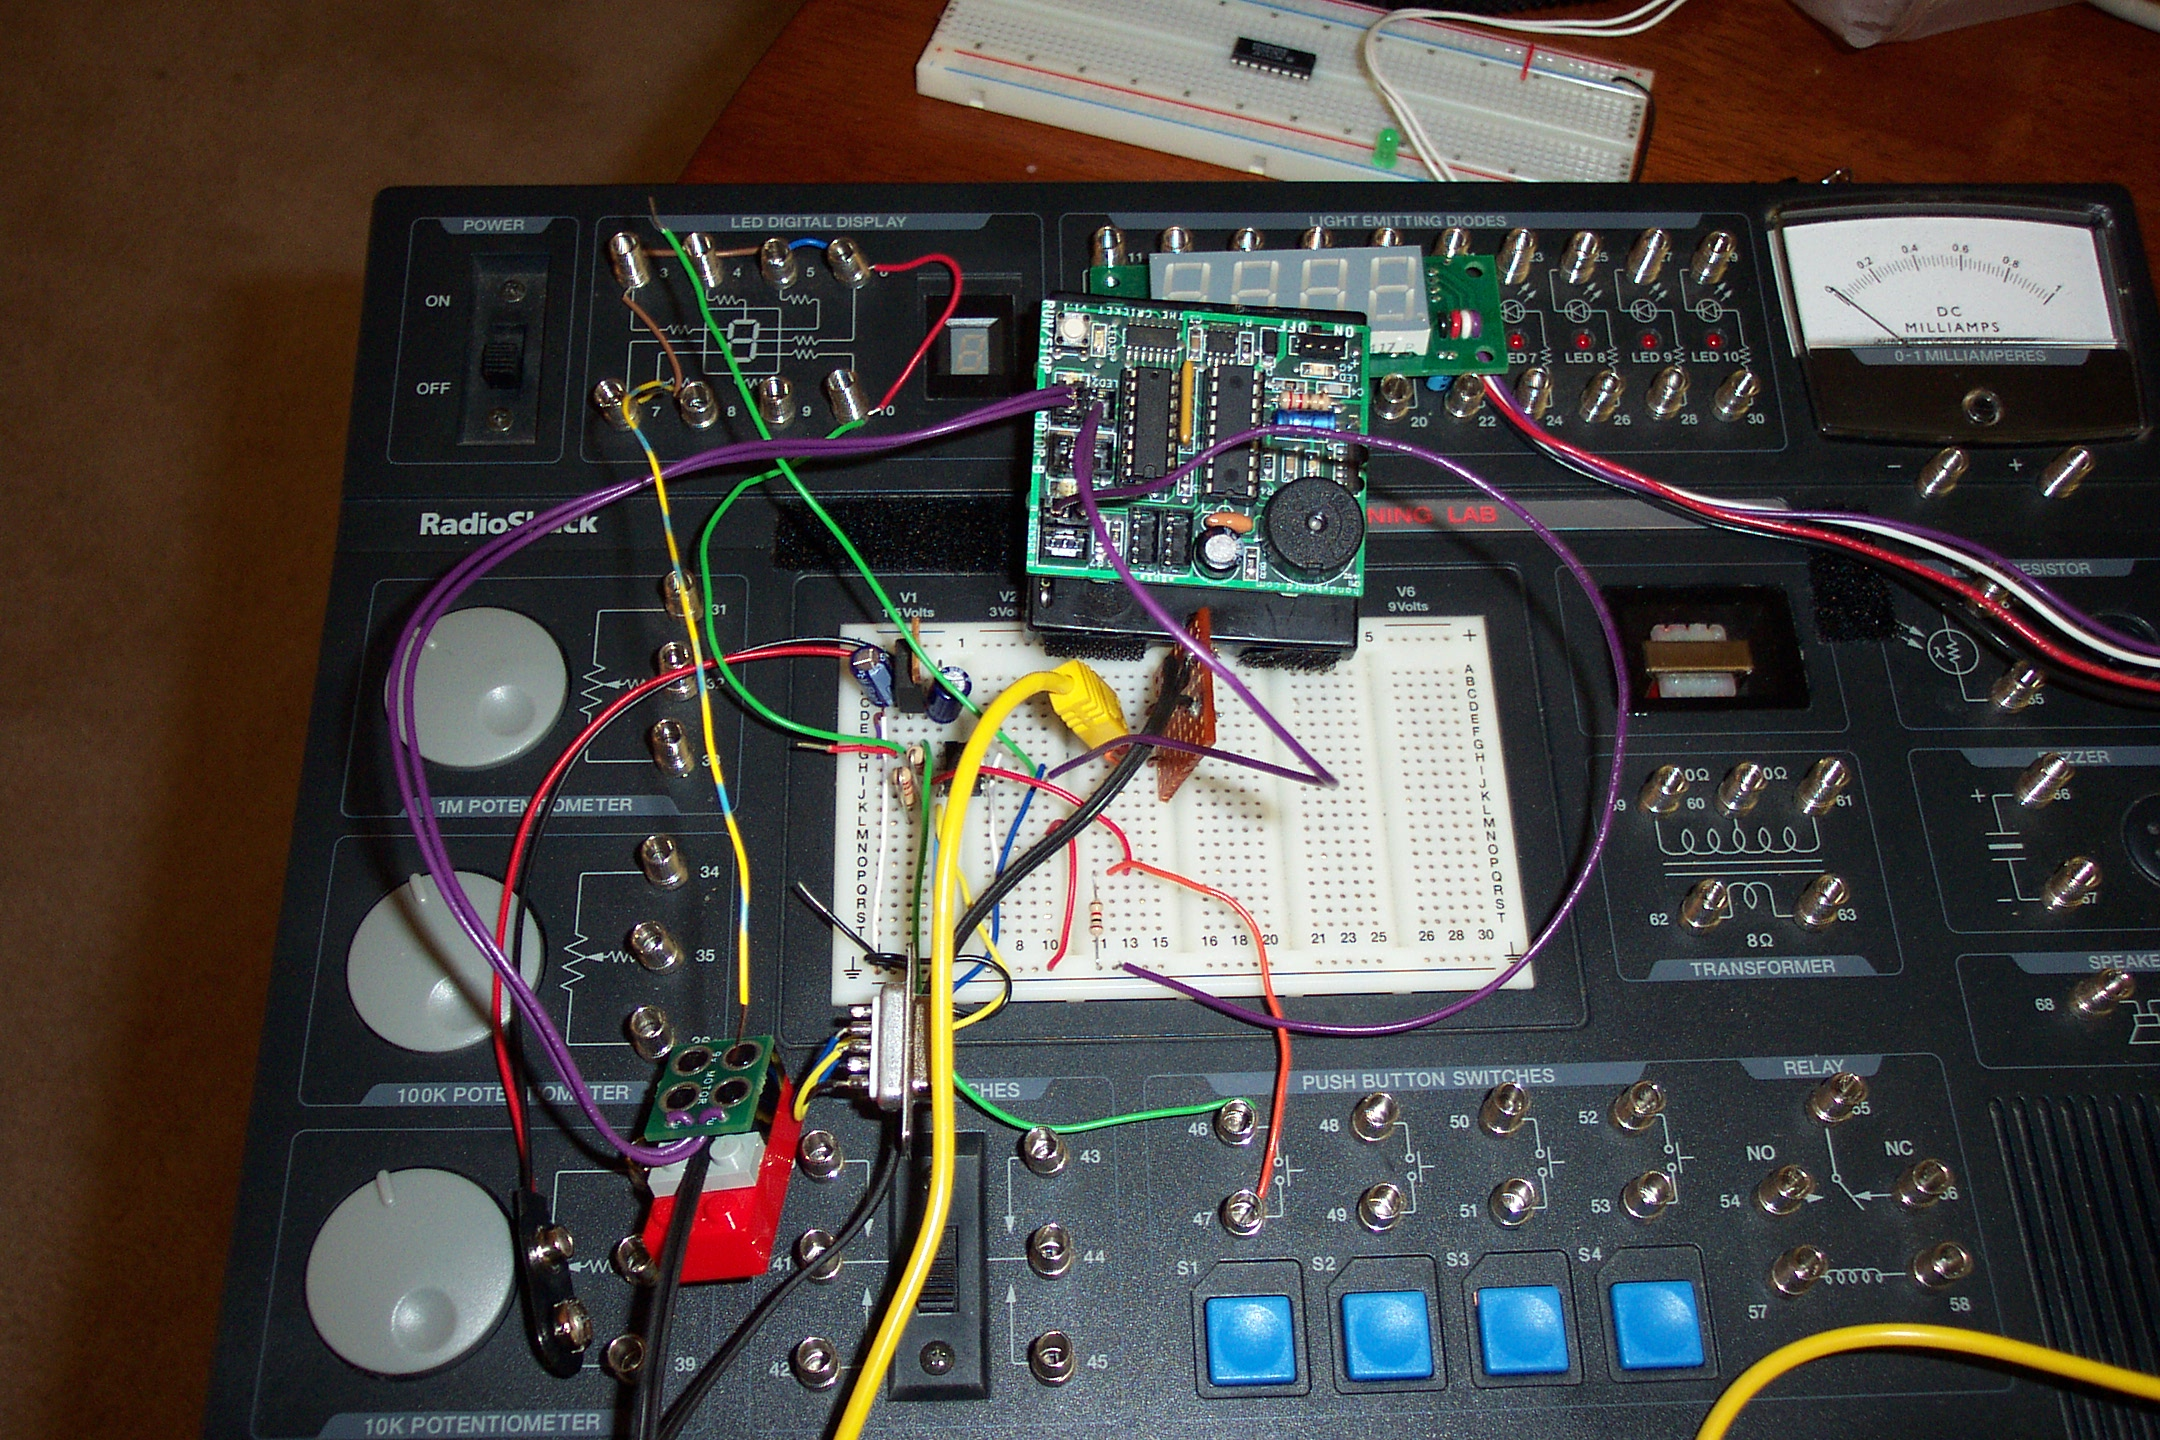 Picture of The Mini-Waking Bot Distributive Controller (DC) Built Using a Radio Shack Electronics Learning Lab